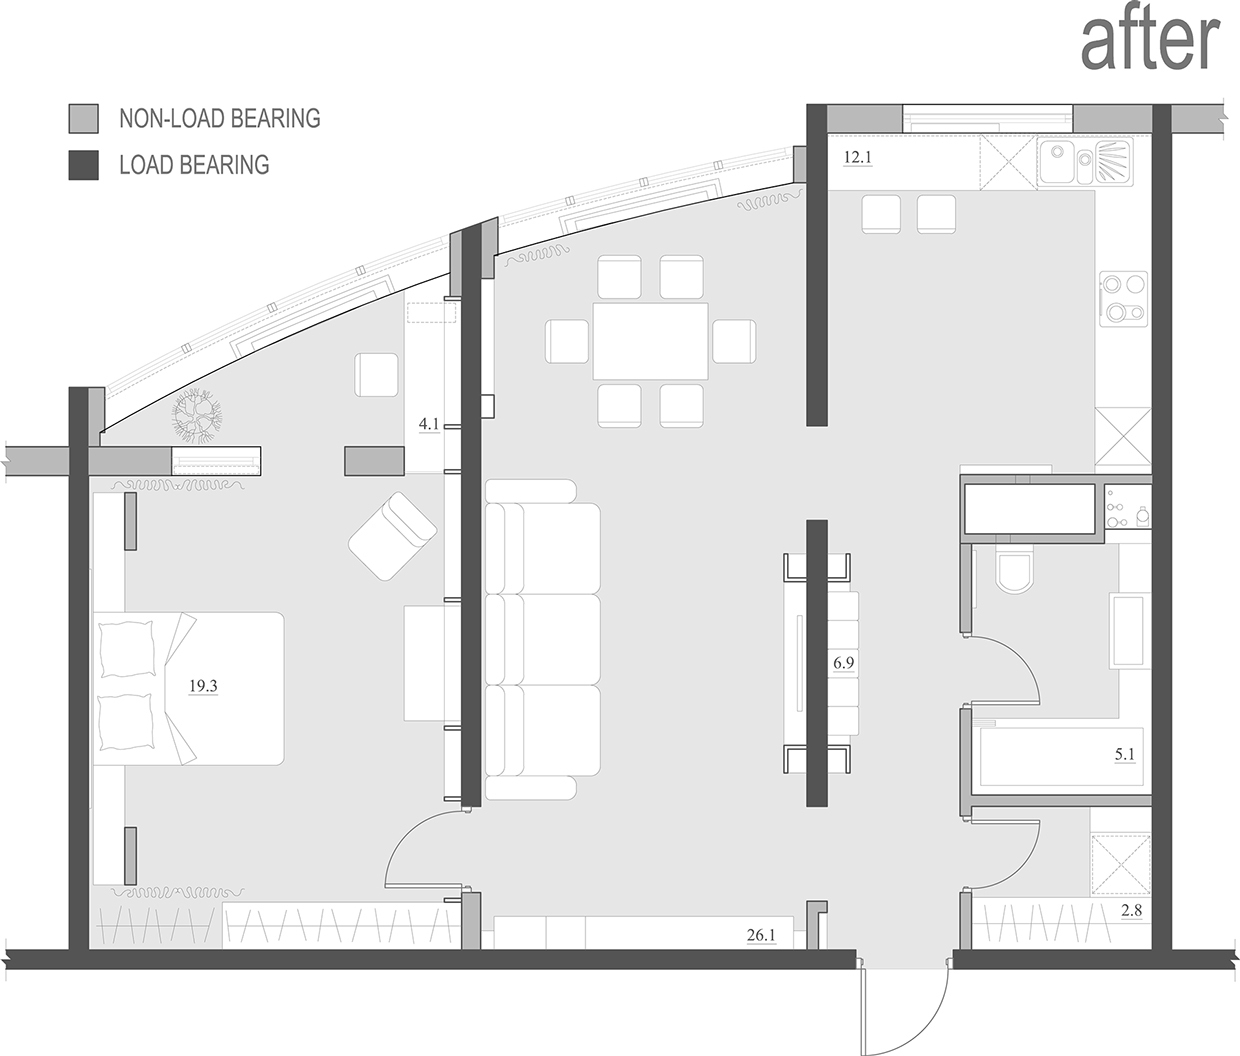 2 single bedroom apartment designs under 75 square meters 250 square foot apartment floor plan